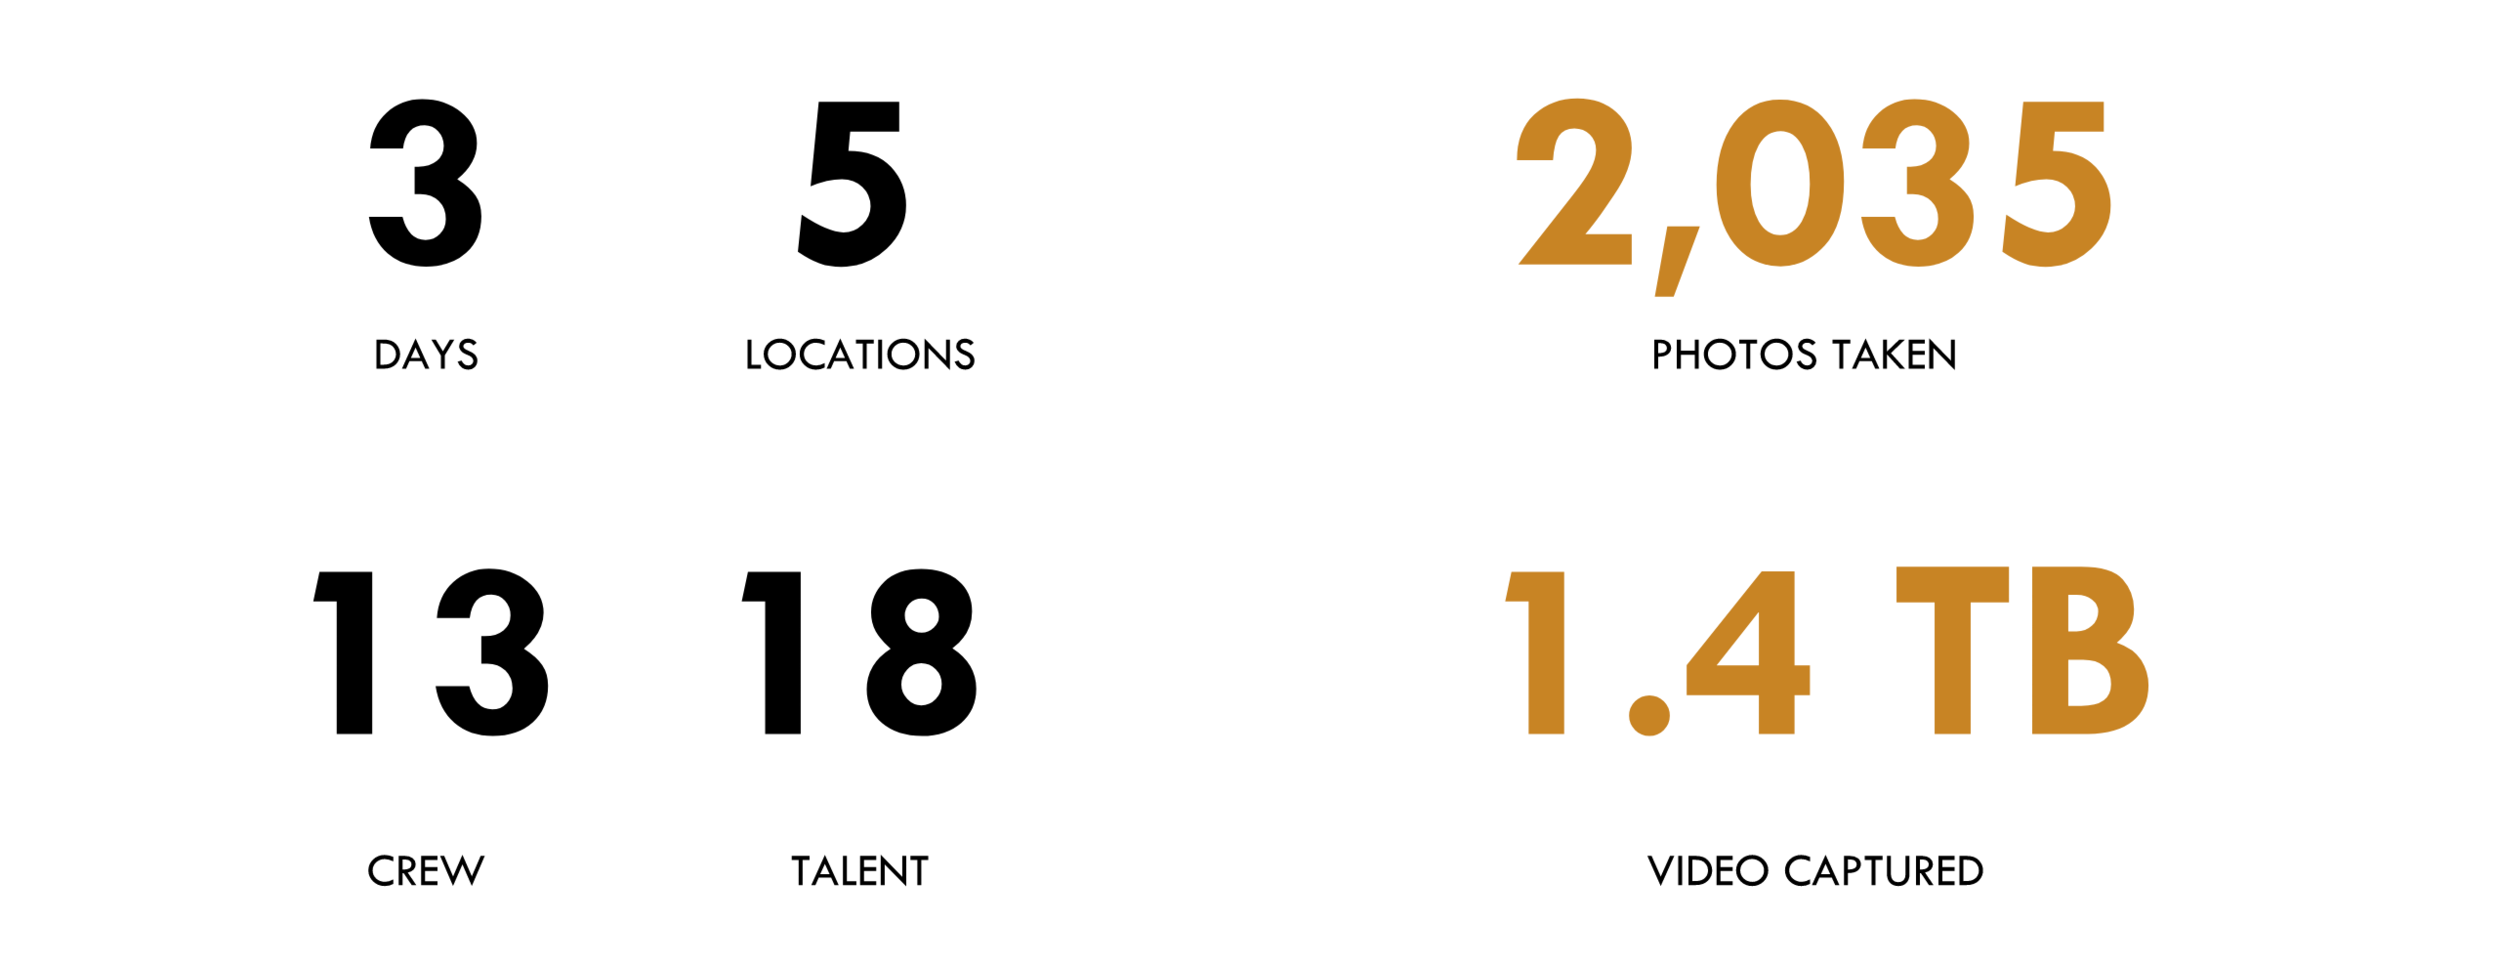 Production stats.png